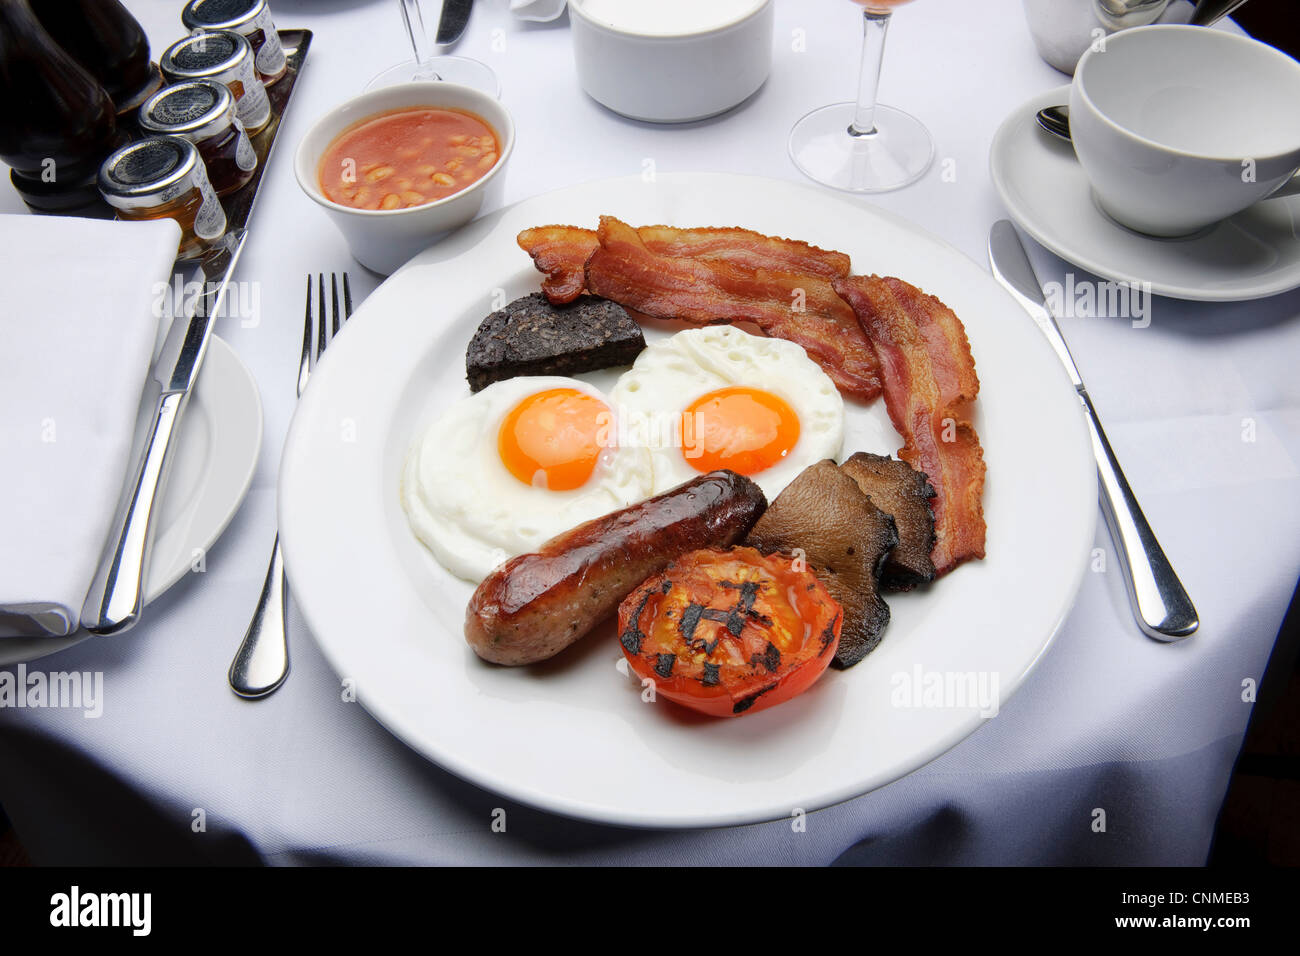 how to cook a healthy full english breakfast